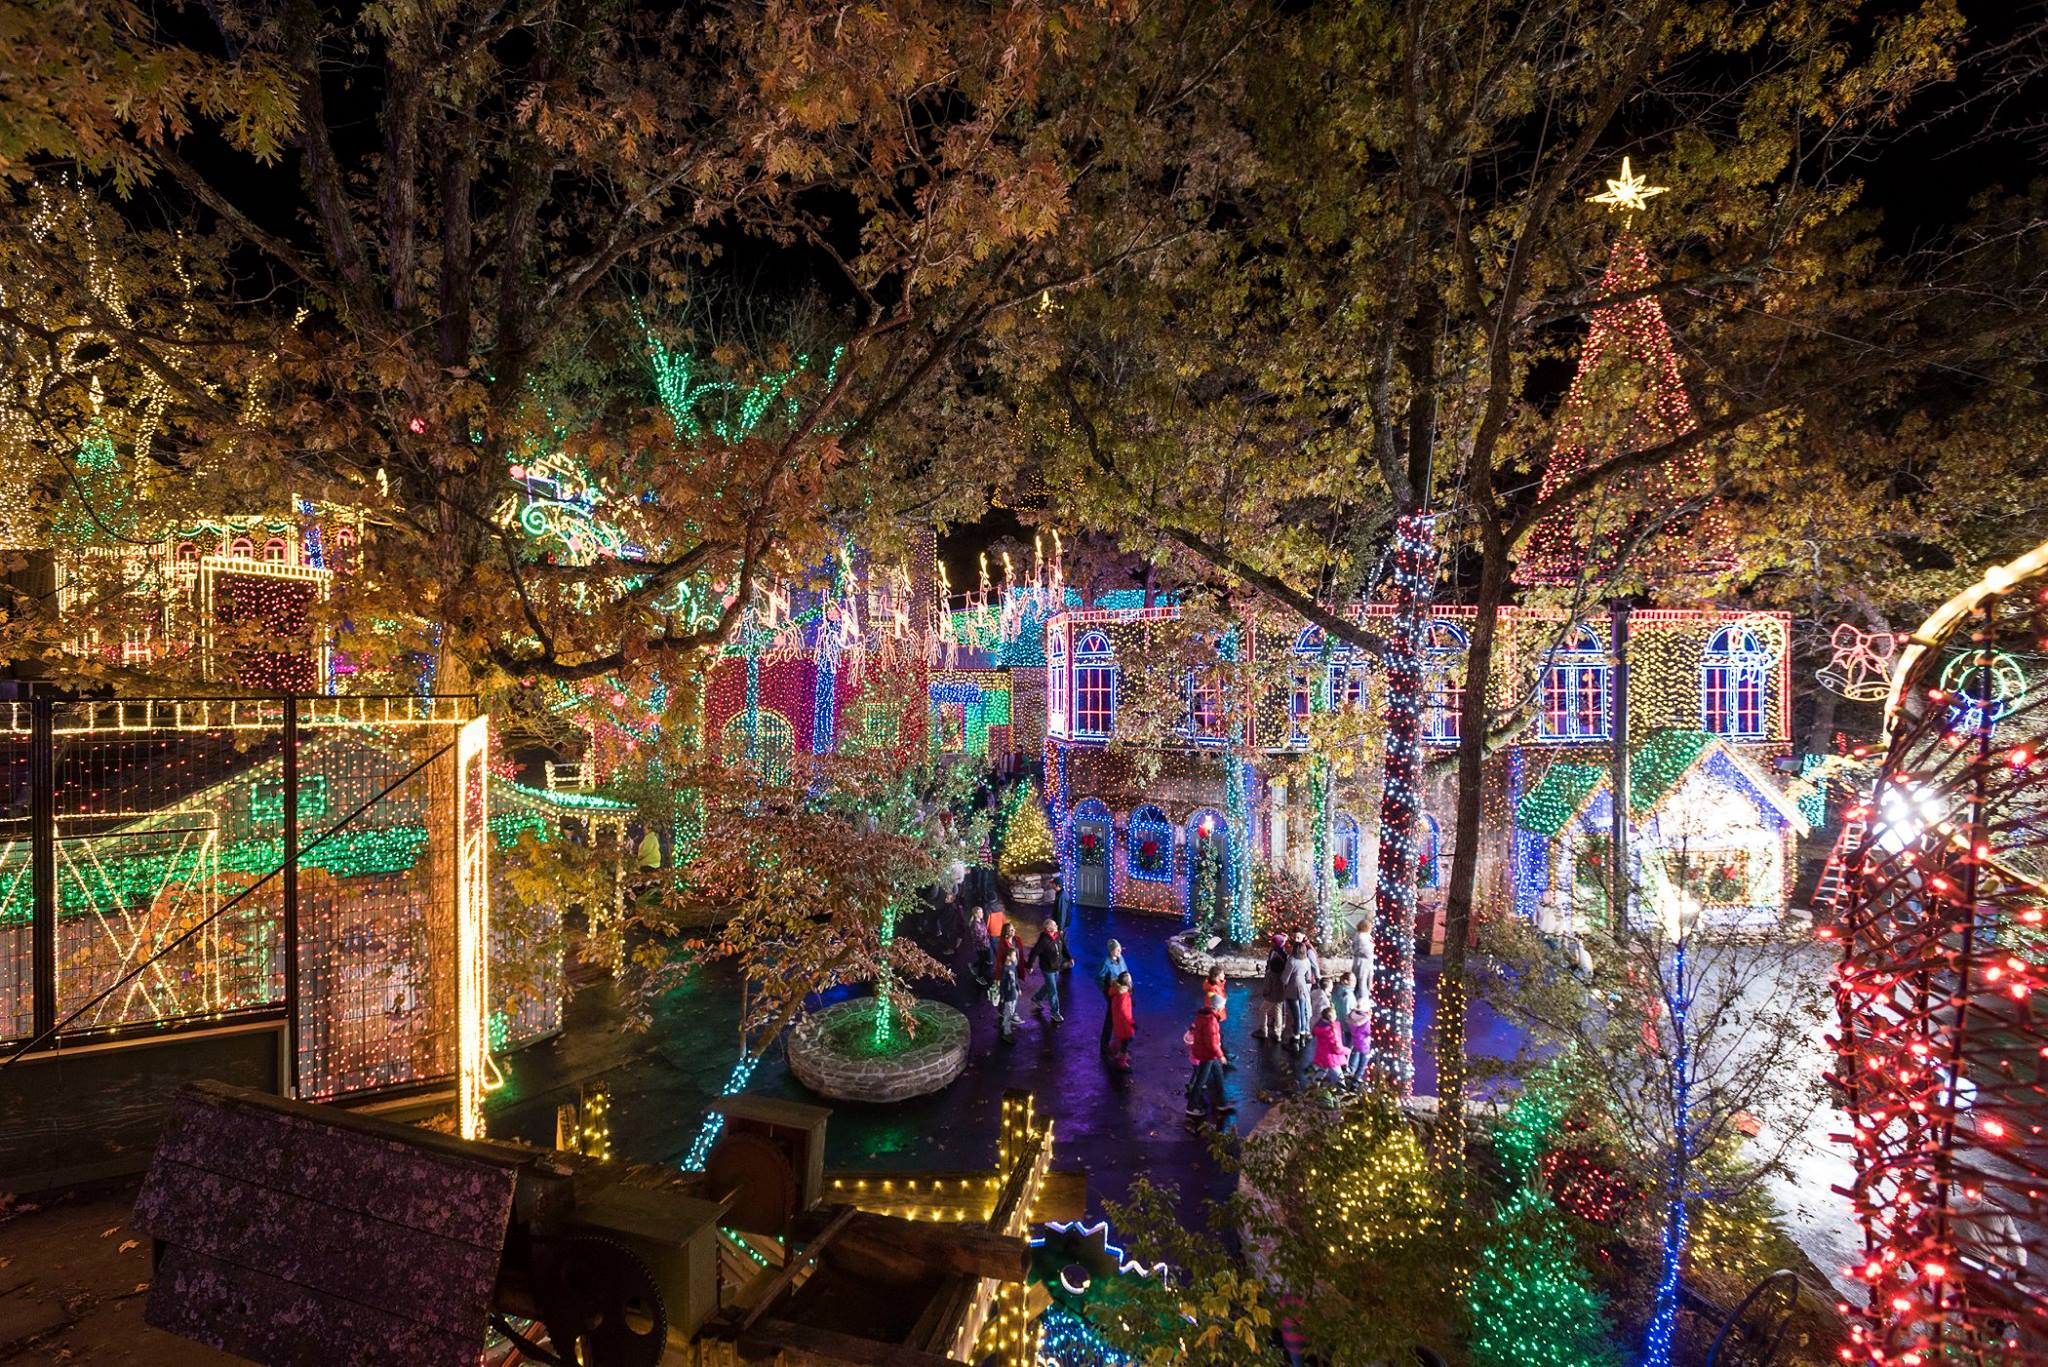 if youre looking for a holiday getaway that captures the feel of a quintessential winter wonderland look no further than these magical christmas light